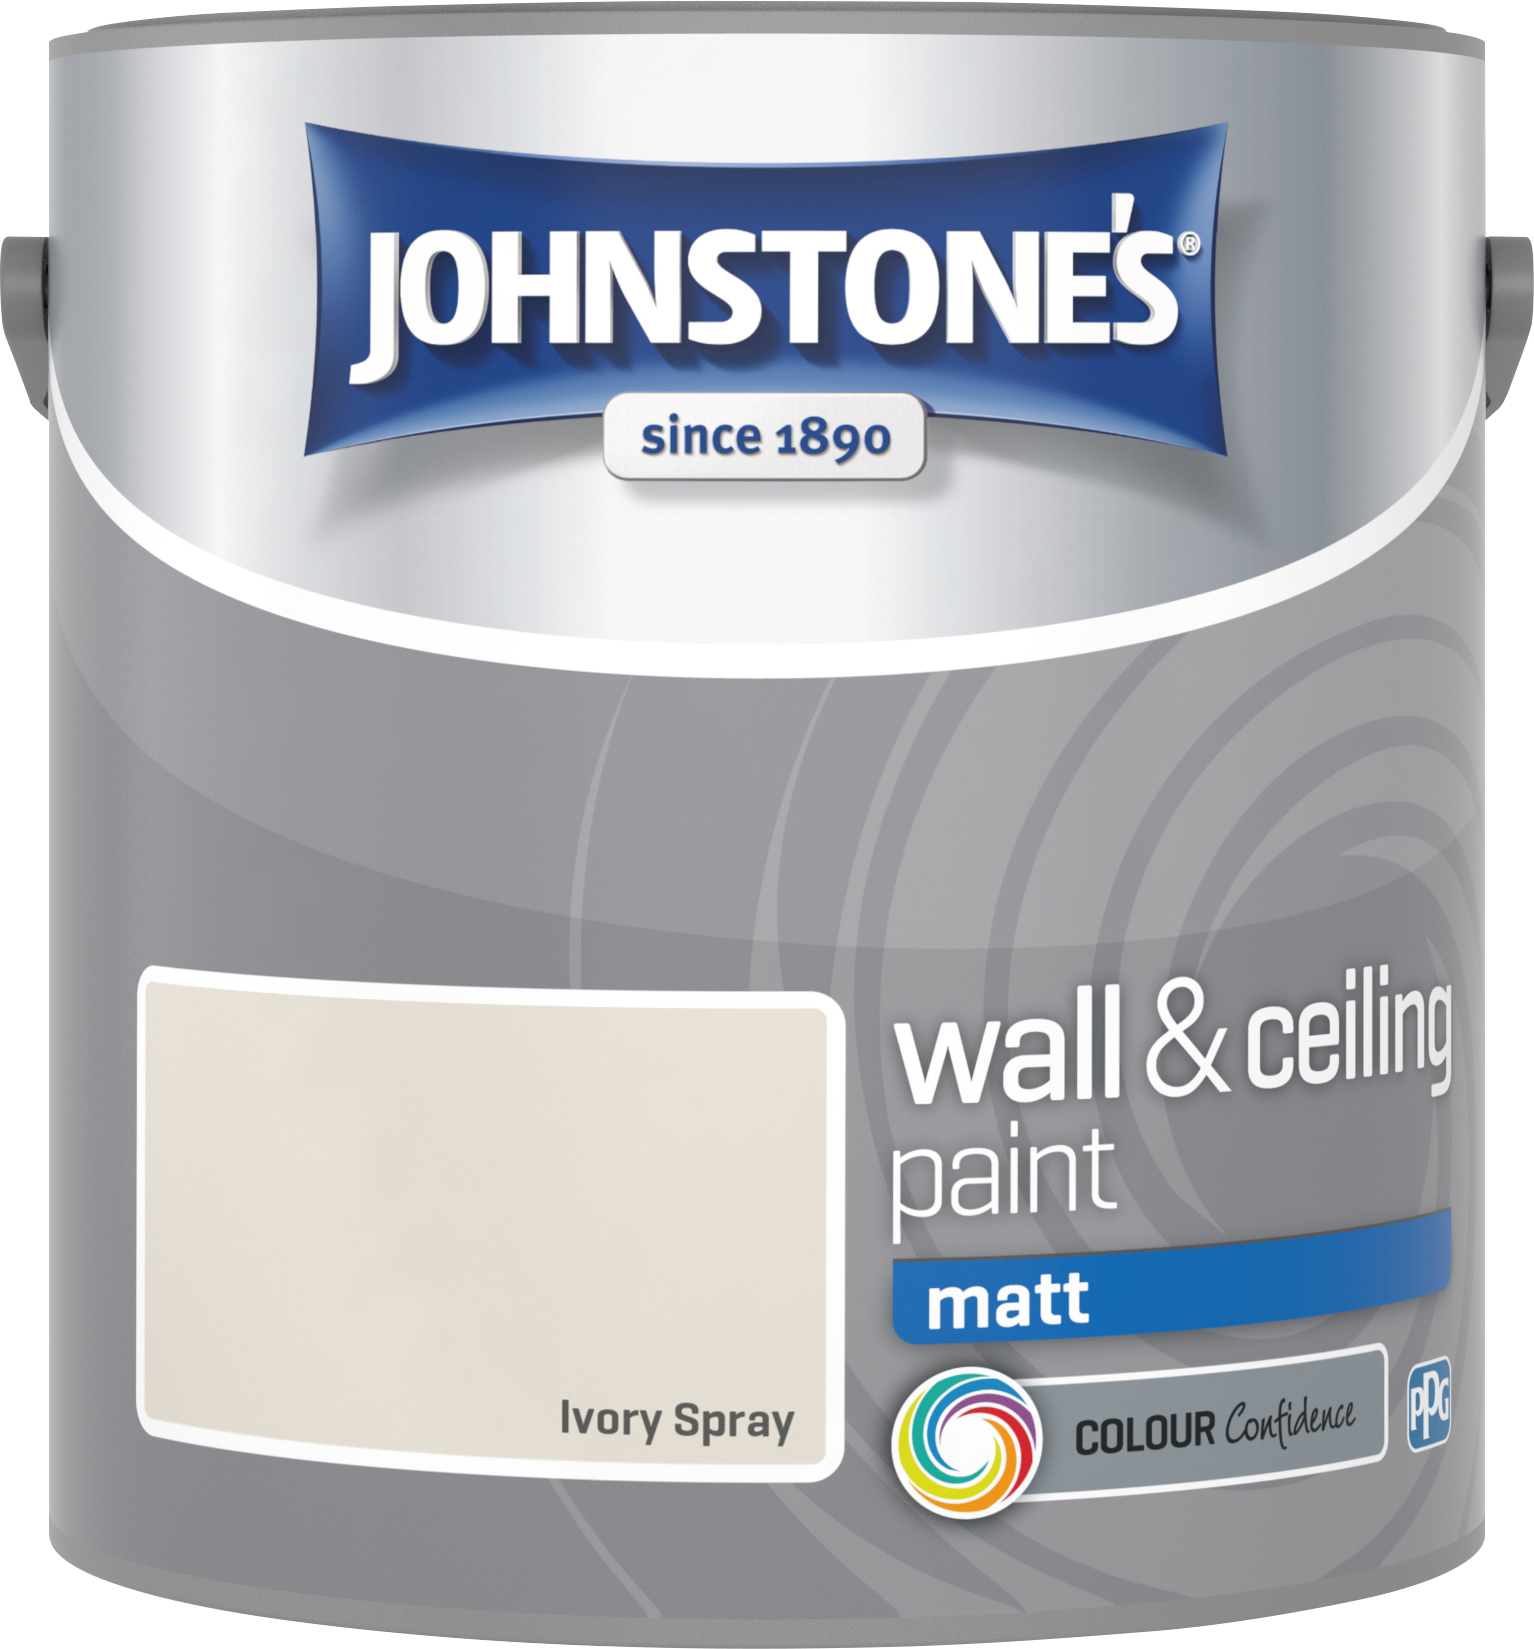 Johnstone's 304022 2.5 Litre Matt Emulsion Paint - Ivory Spray